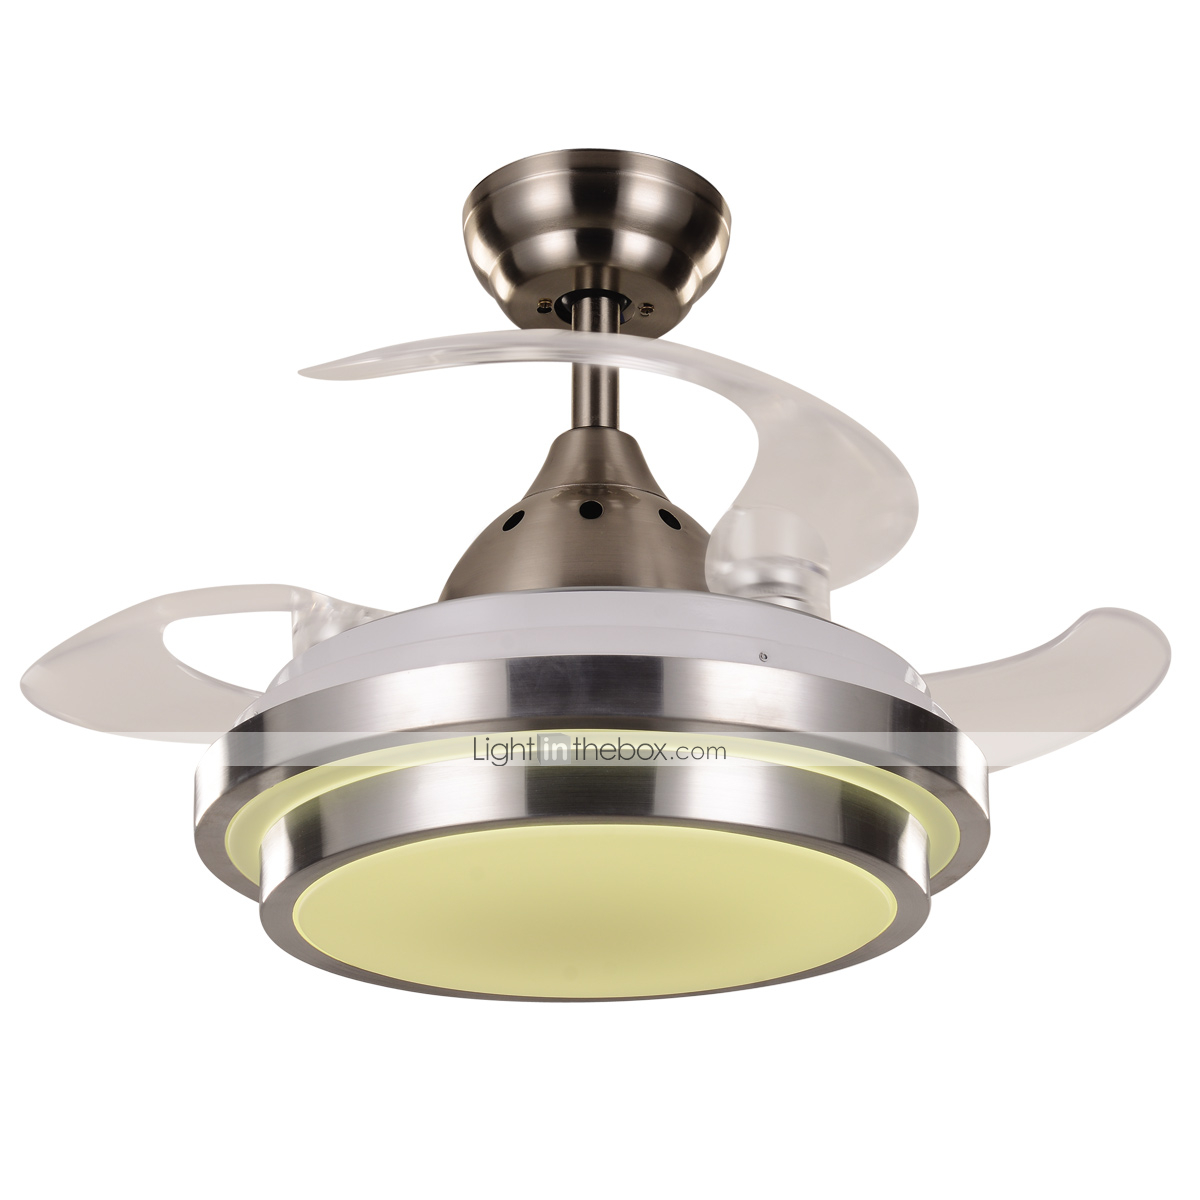 Ecolight™ Ceiling Fan Ambient Light Painted Finishes Metal